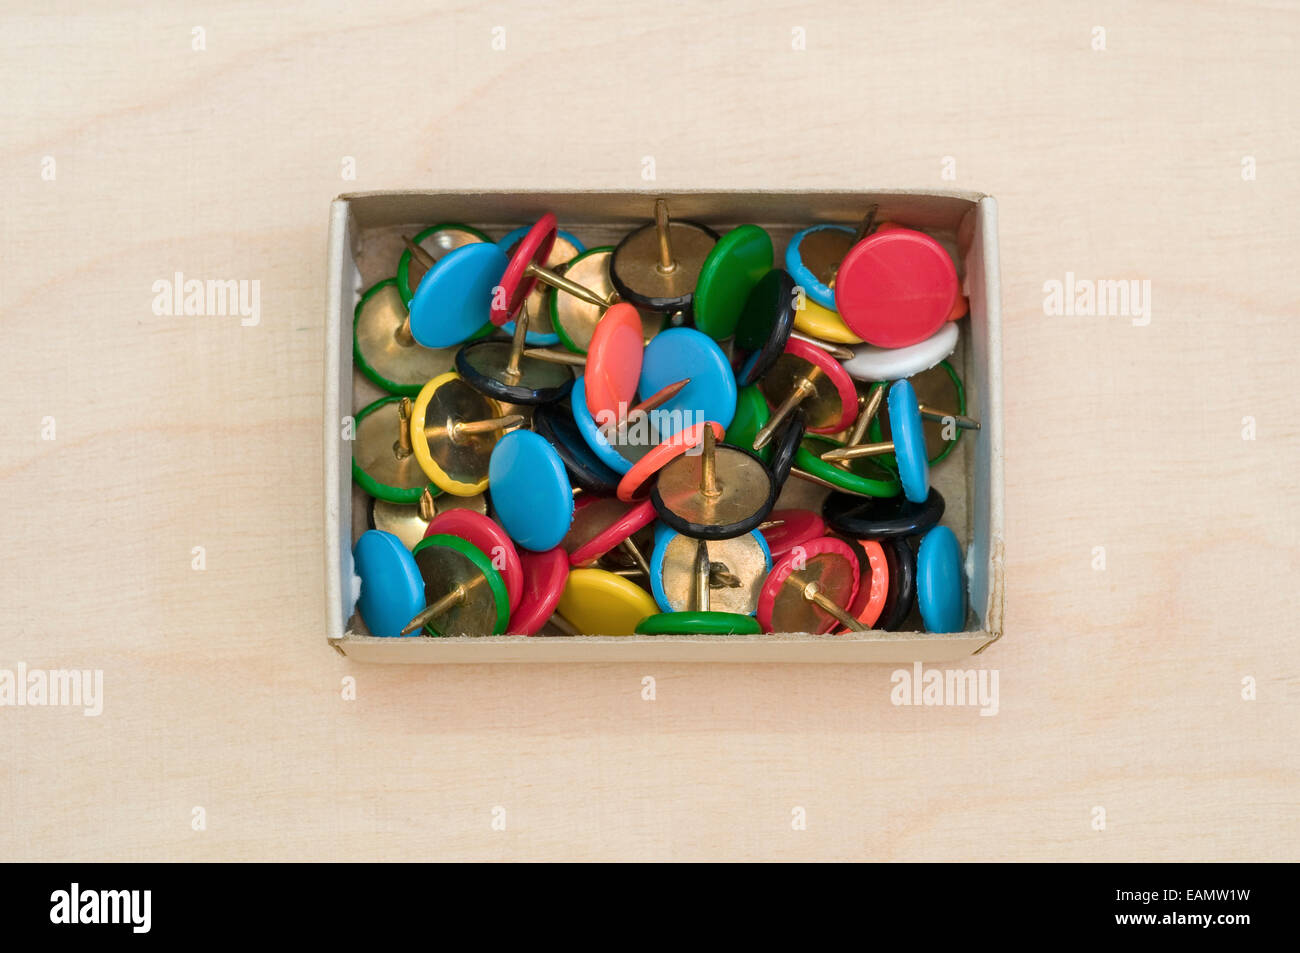 Push Pins in Paper Box - Stock Image